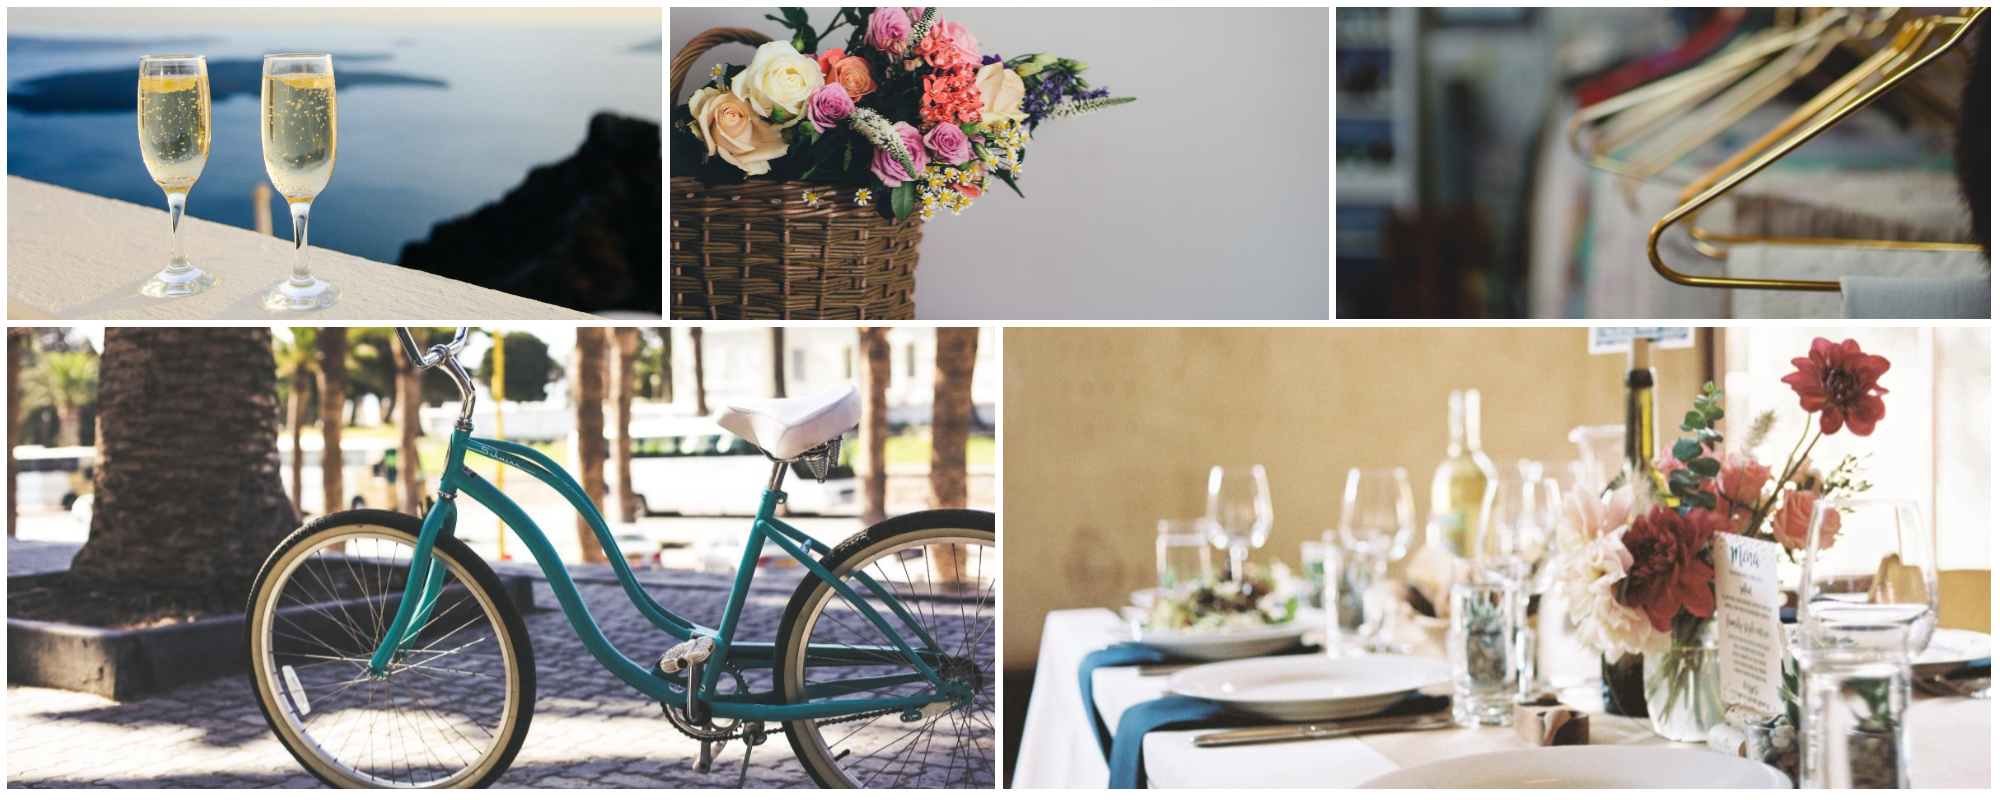 photo collage: champagne, gift basket, laundry, bike, dinner